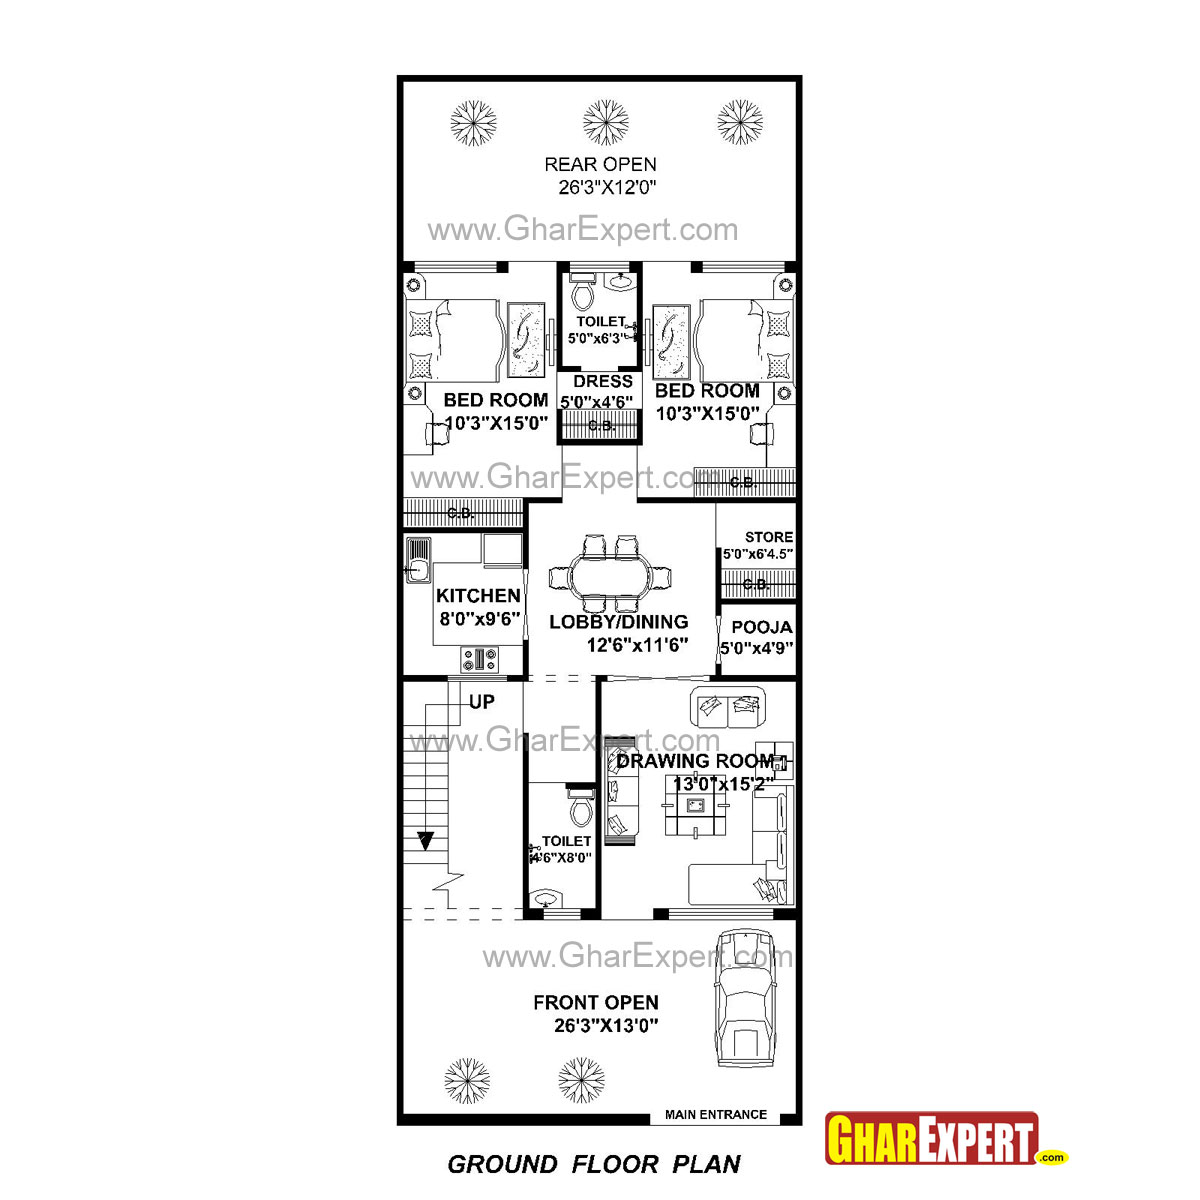 you design it house plans with Plan For 27 Feet By 70 Feet Plot  Plot Size 210 Square Yards  Plan Code 1316 on Simple House Drawing Kids Zoneinteriordesign besides Finch Bird House Plans Beautiful Best 25 Building Bird Houses Ideas On Pinterest likewise El Anti Star System Glenn Murcutt moreover Property 35007373 moreover Stock Image Old Town Cityscape Street Sketch Historic Building House Pedestrian European City Tower Background City Image37418641.